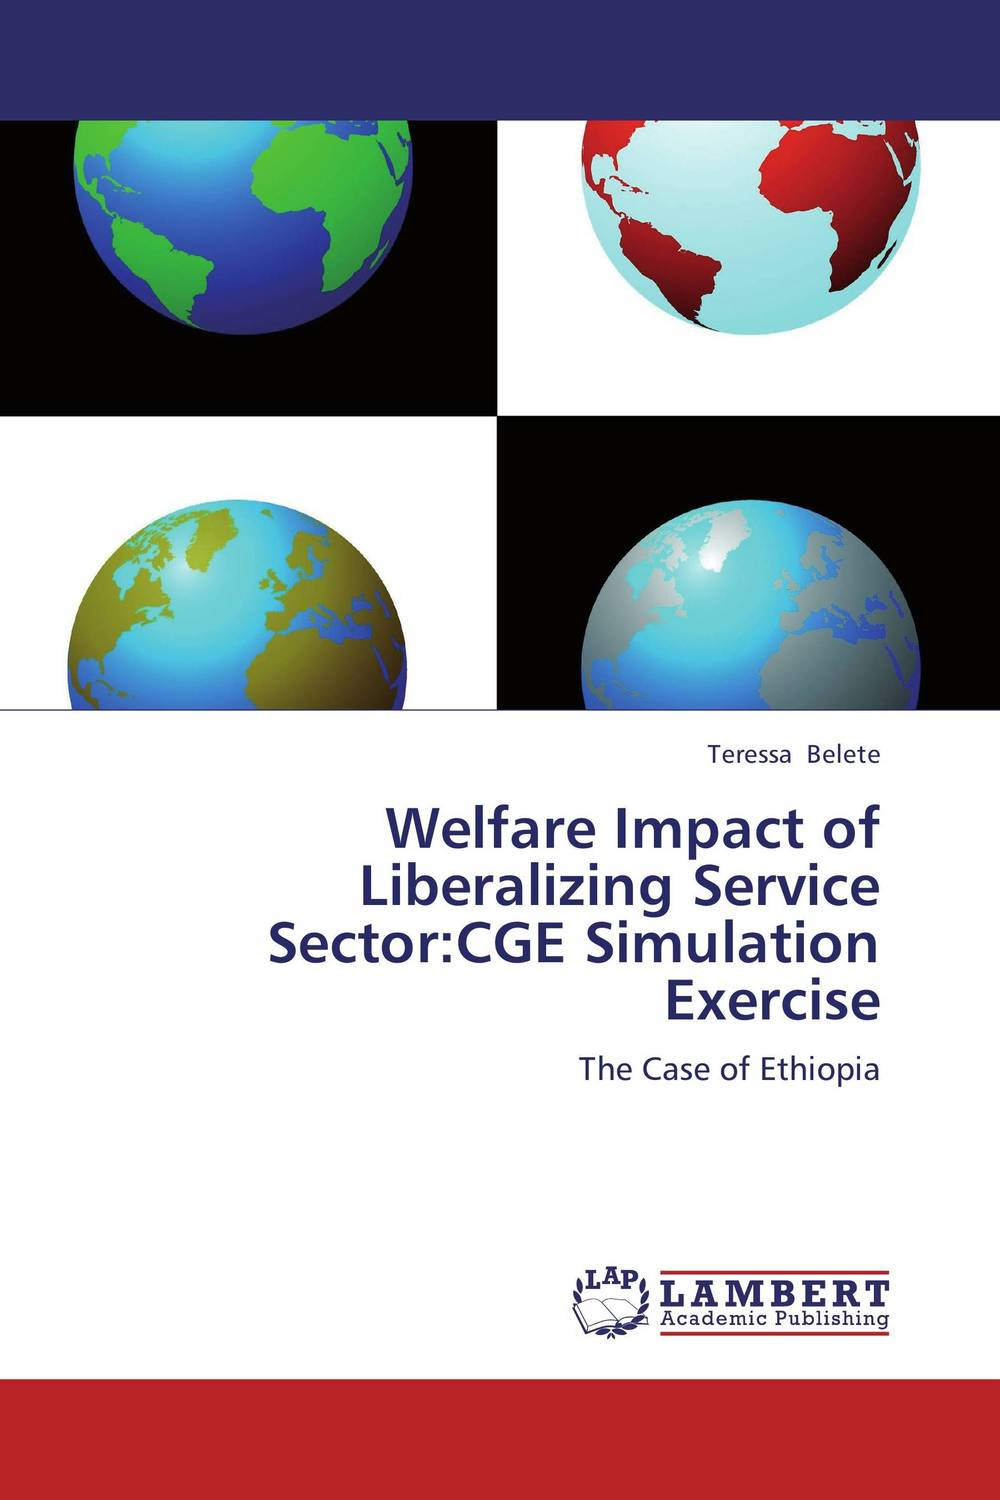 Welfare Impact of Liberalizing  Service Sector:CGE Simulation Exercise impact of liberalization of coffee subsector on human welfare in kenya